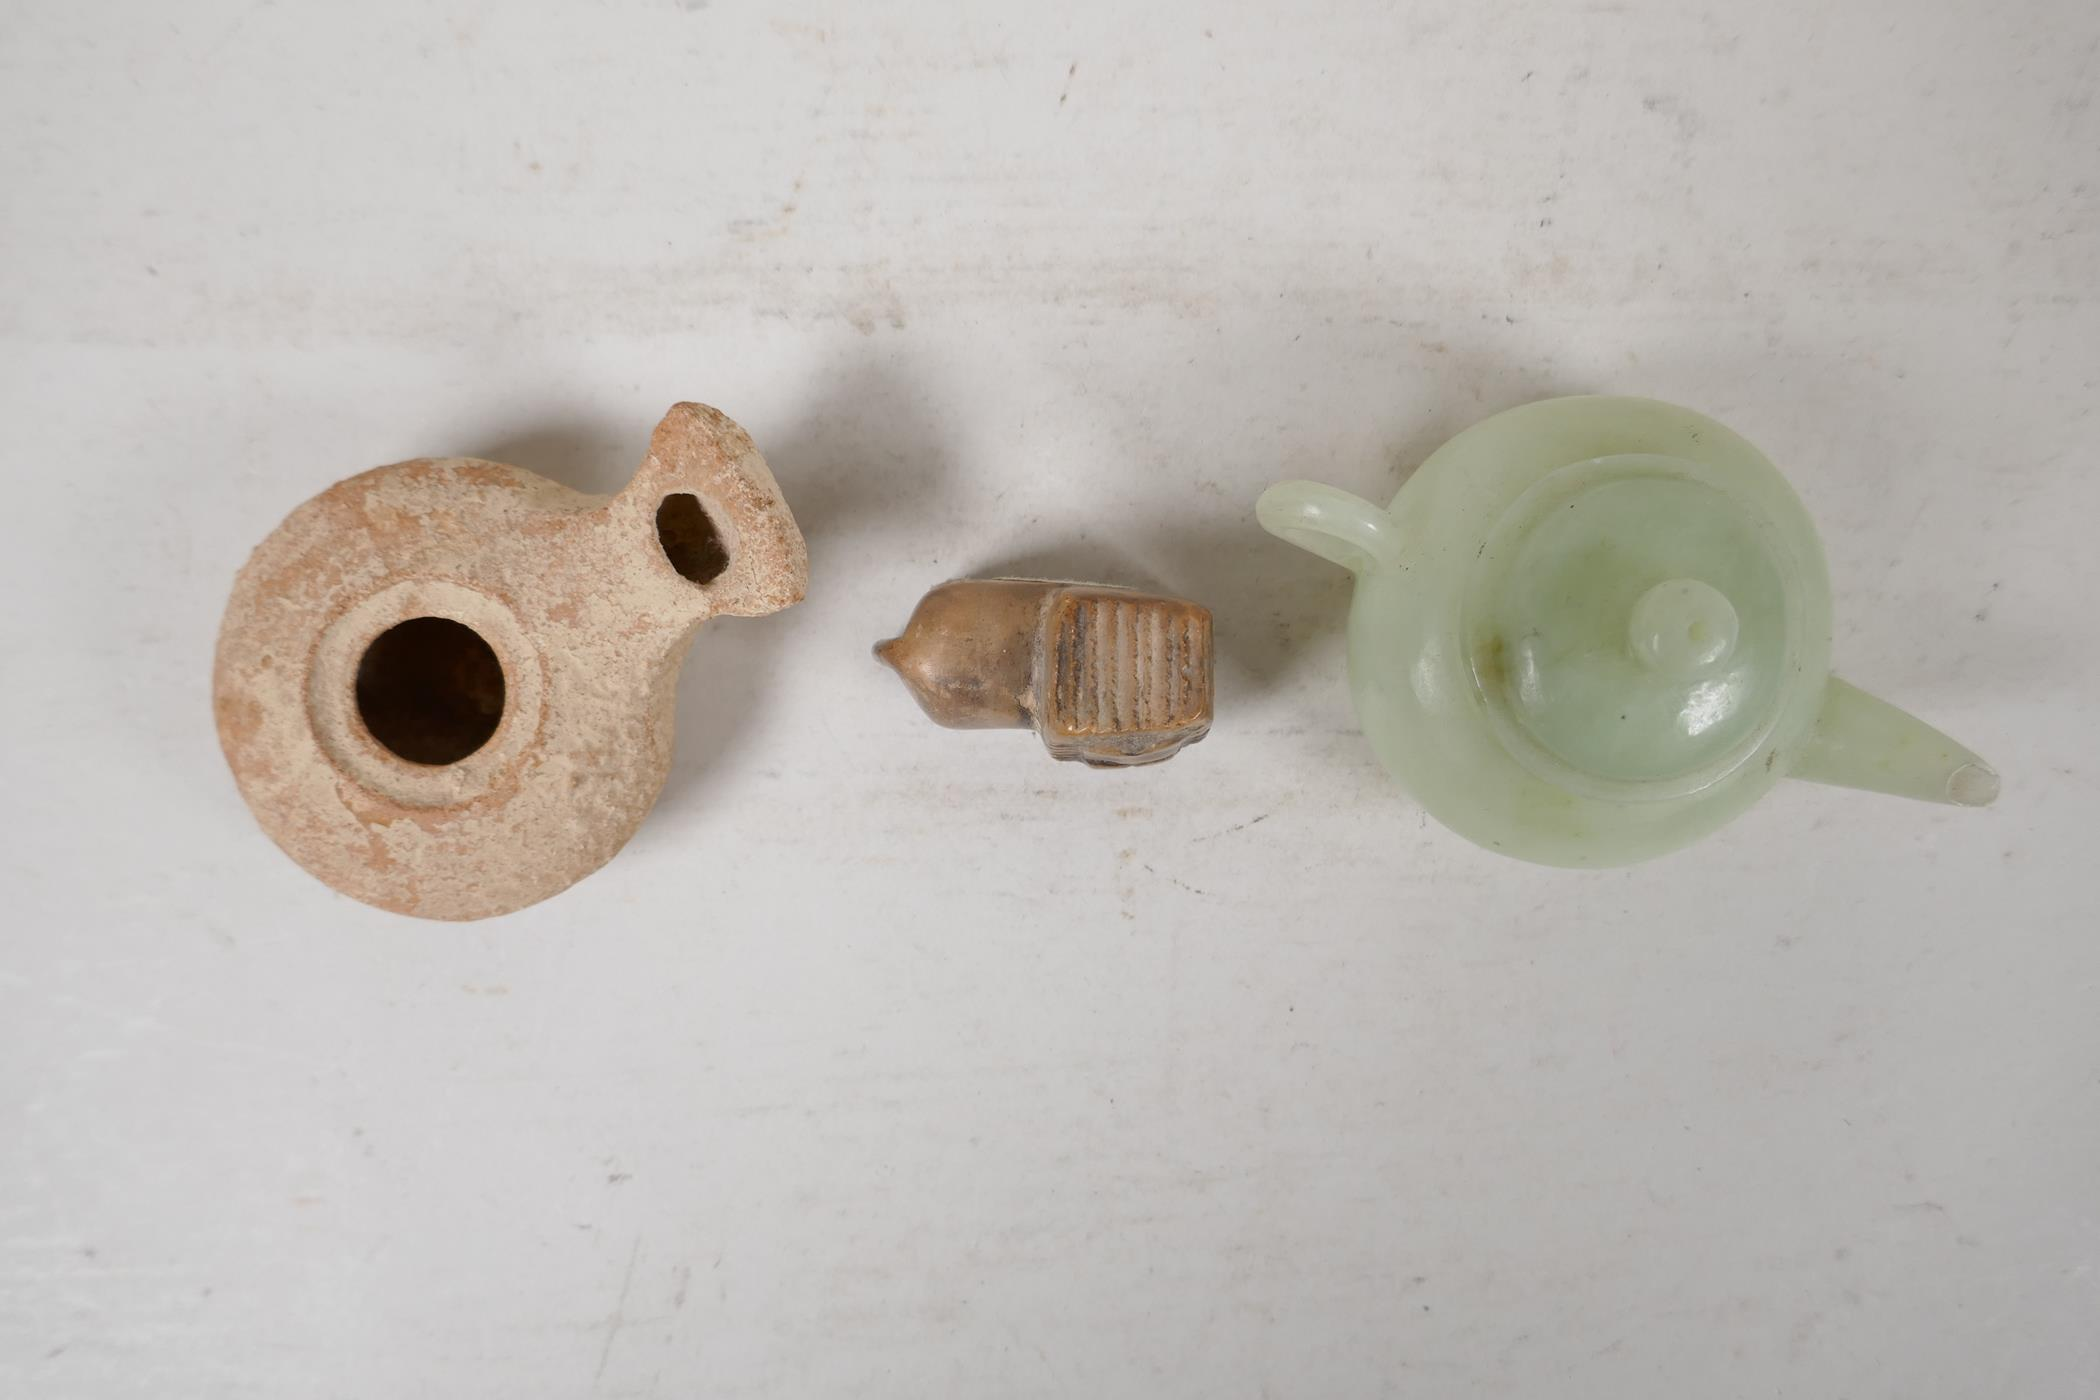 A Chinese carved green jade squat form teapot, Roman terracotta oil lamp, and a carved soapstone - Image 5 of 5